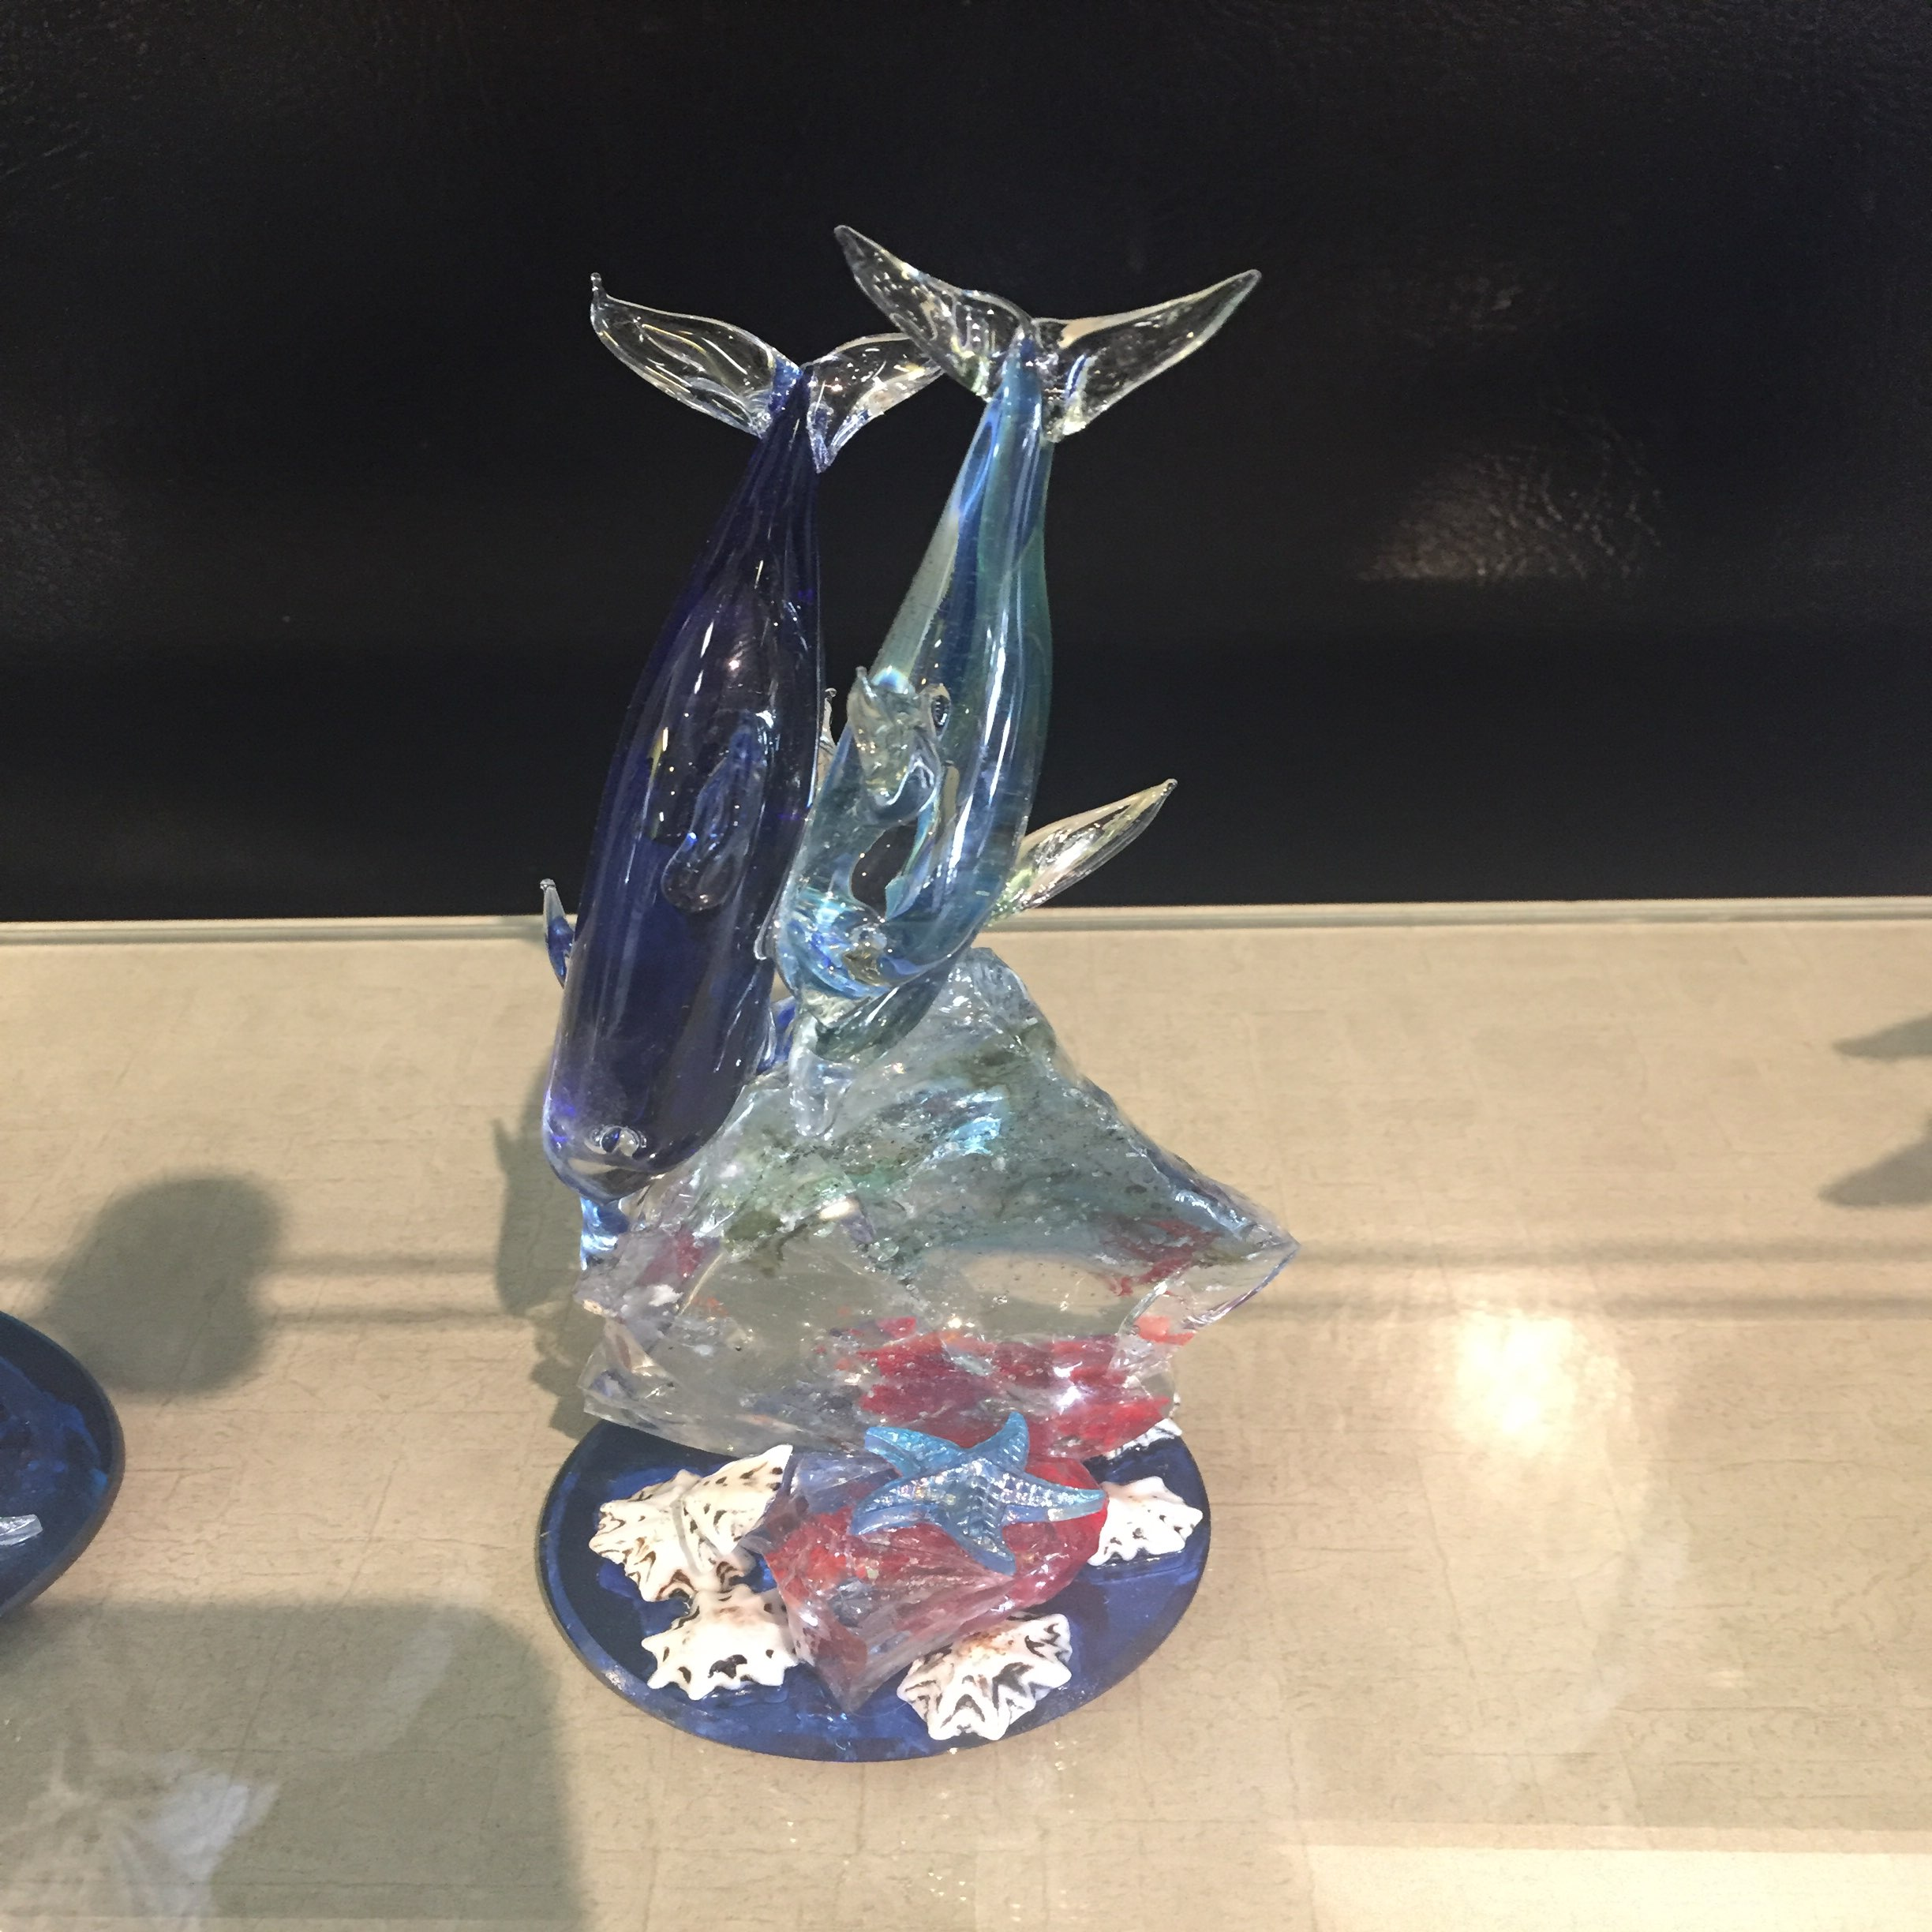 Glass Dolphin Sculpture